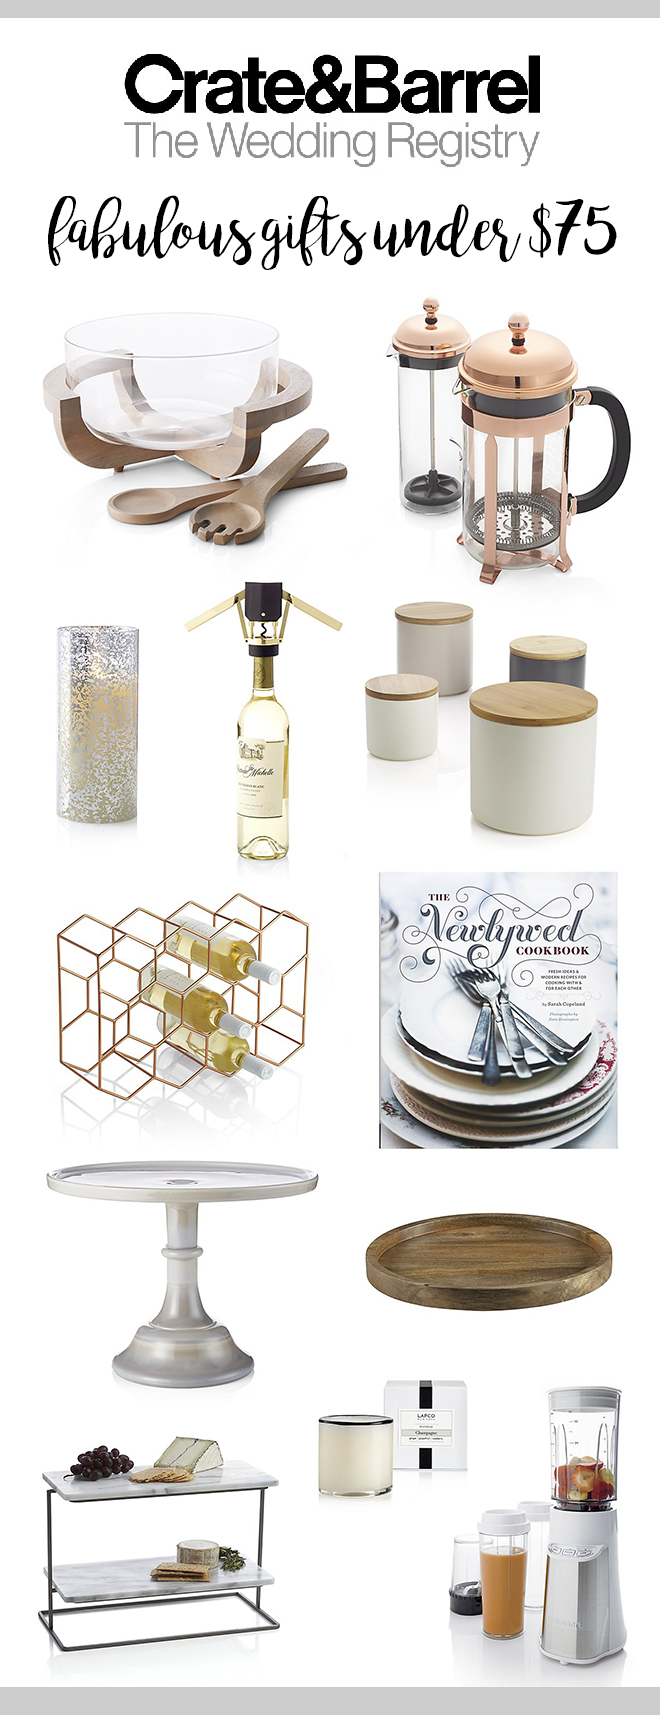 Crate Barrel Wedding Registry.Top Crate Barrel Registry Picks By Price 25 75 And 150